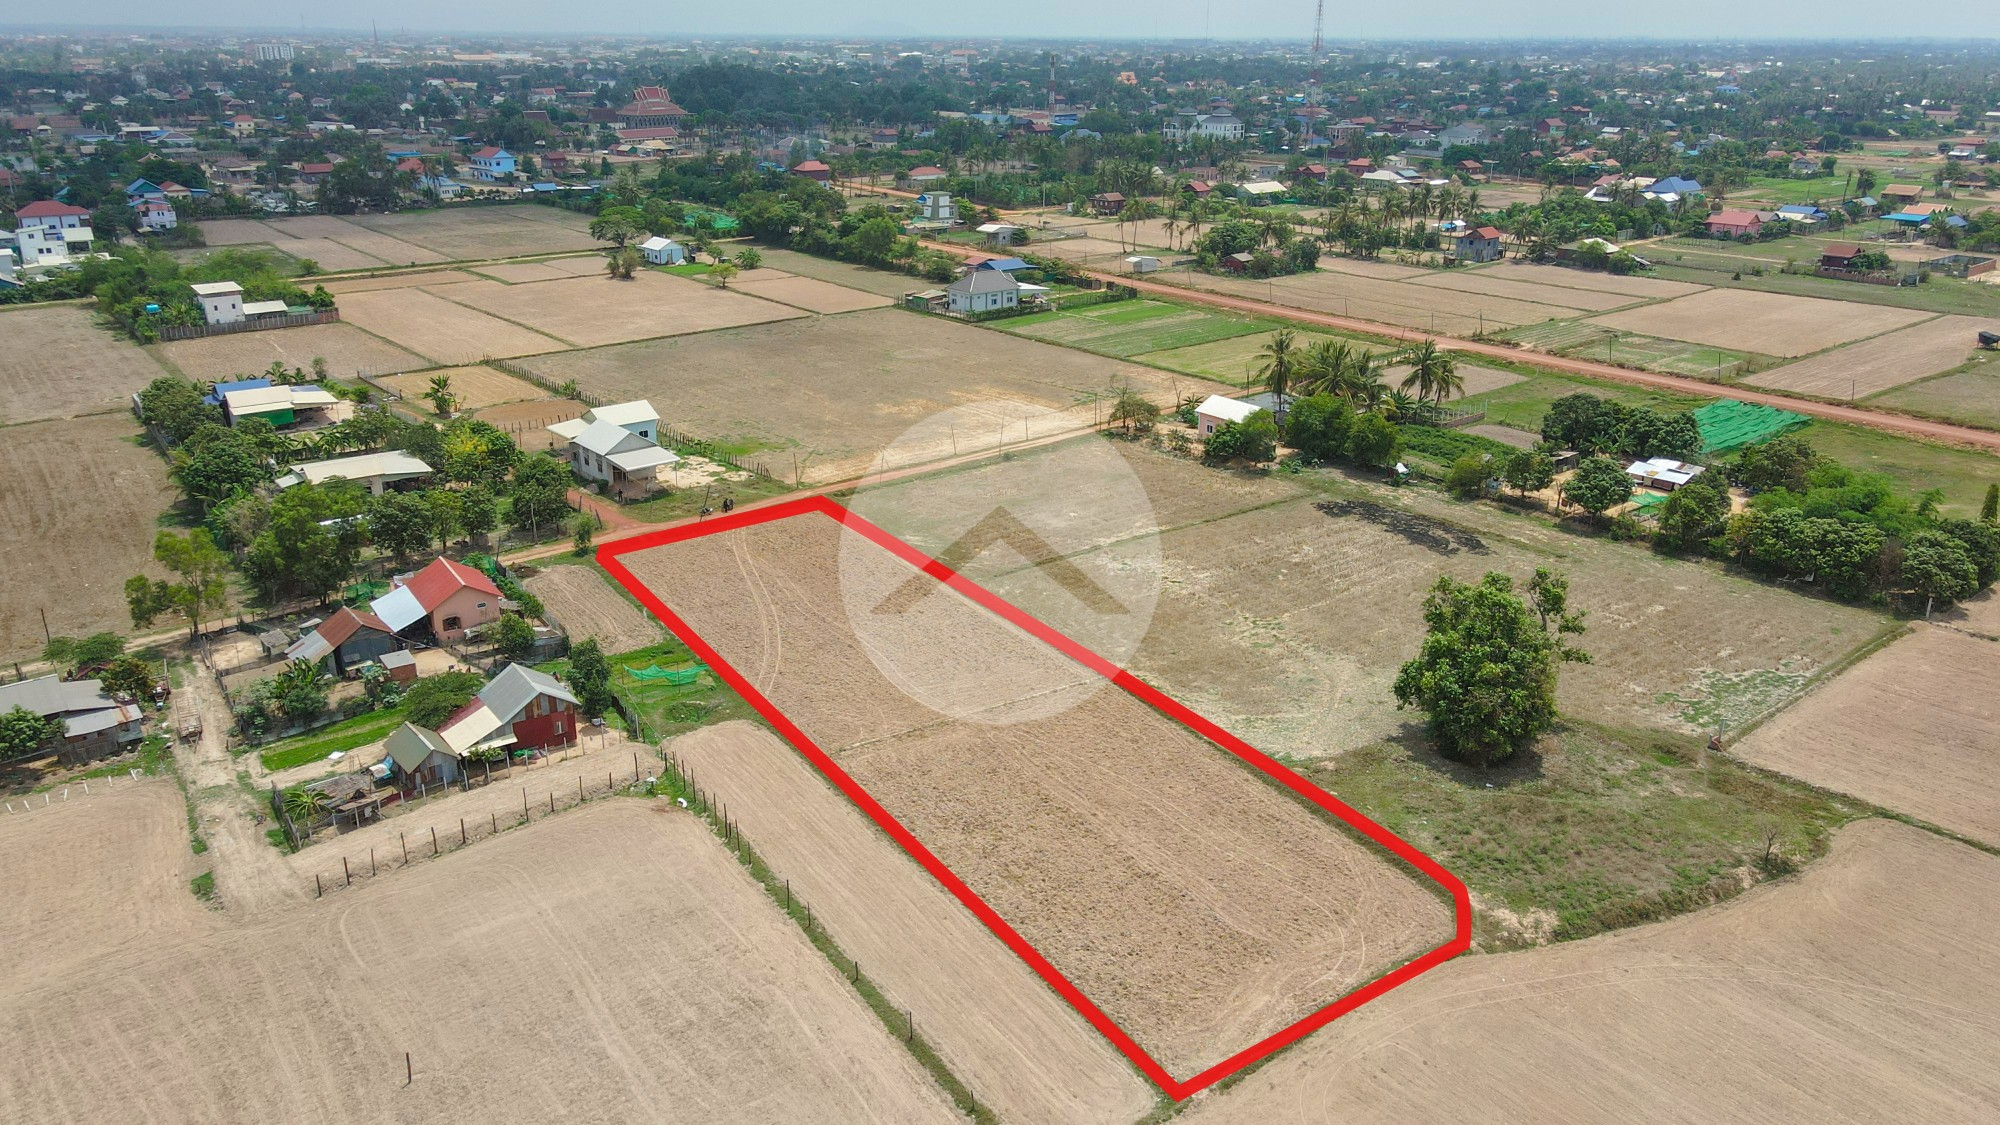 2801 Sqm Residential Land For Sale - Chreav, Siem Reap